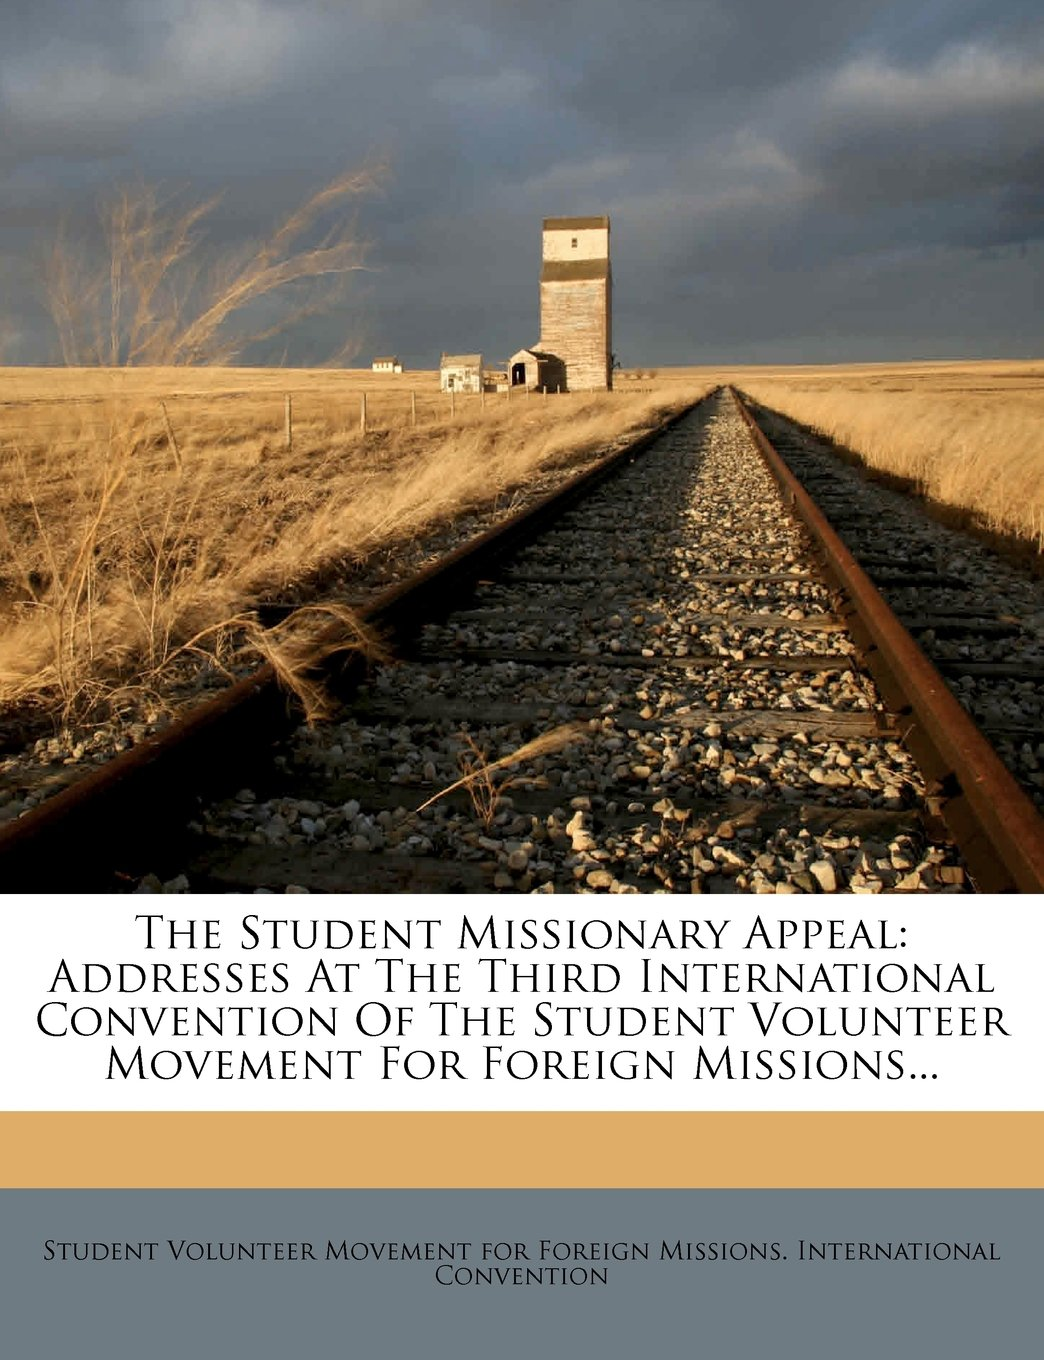 The Student Missionary Appeal: Addresses At The Third International Convention Of The Student Volunteer Movement For Foreign Missions... pdf